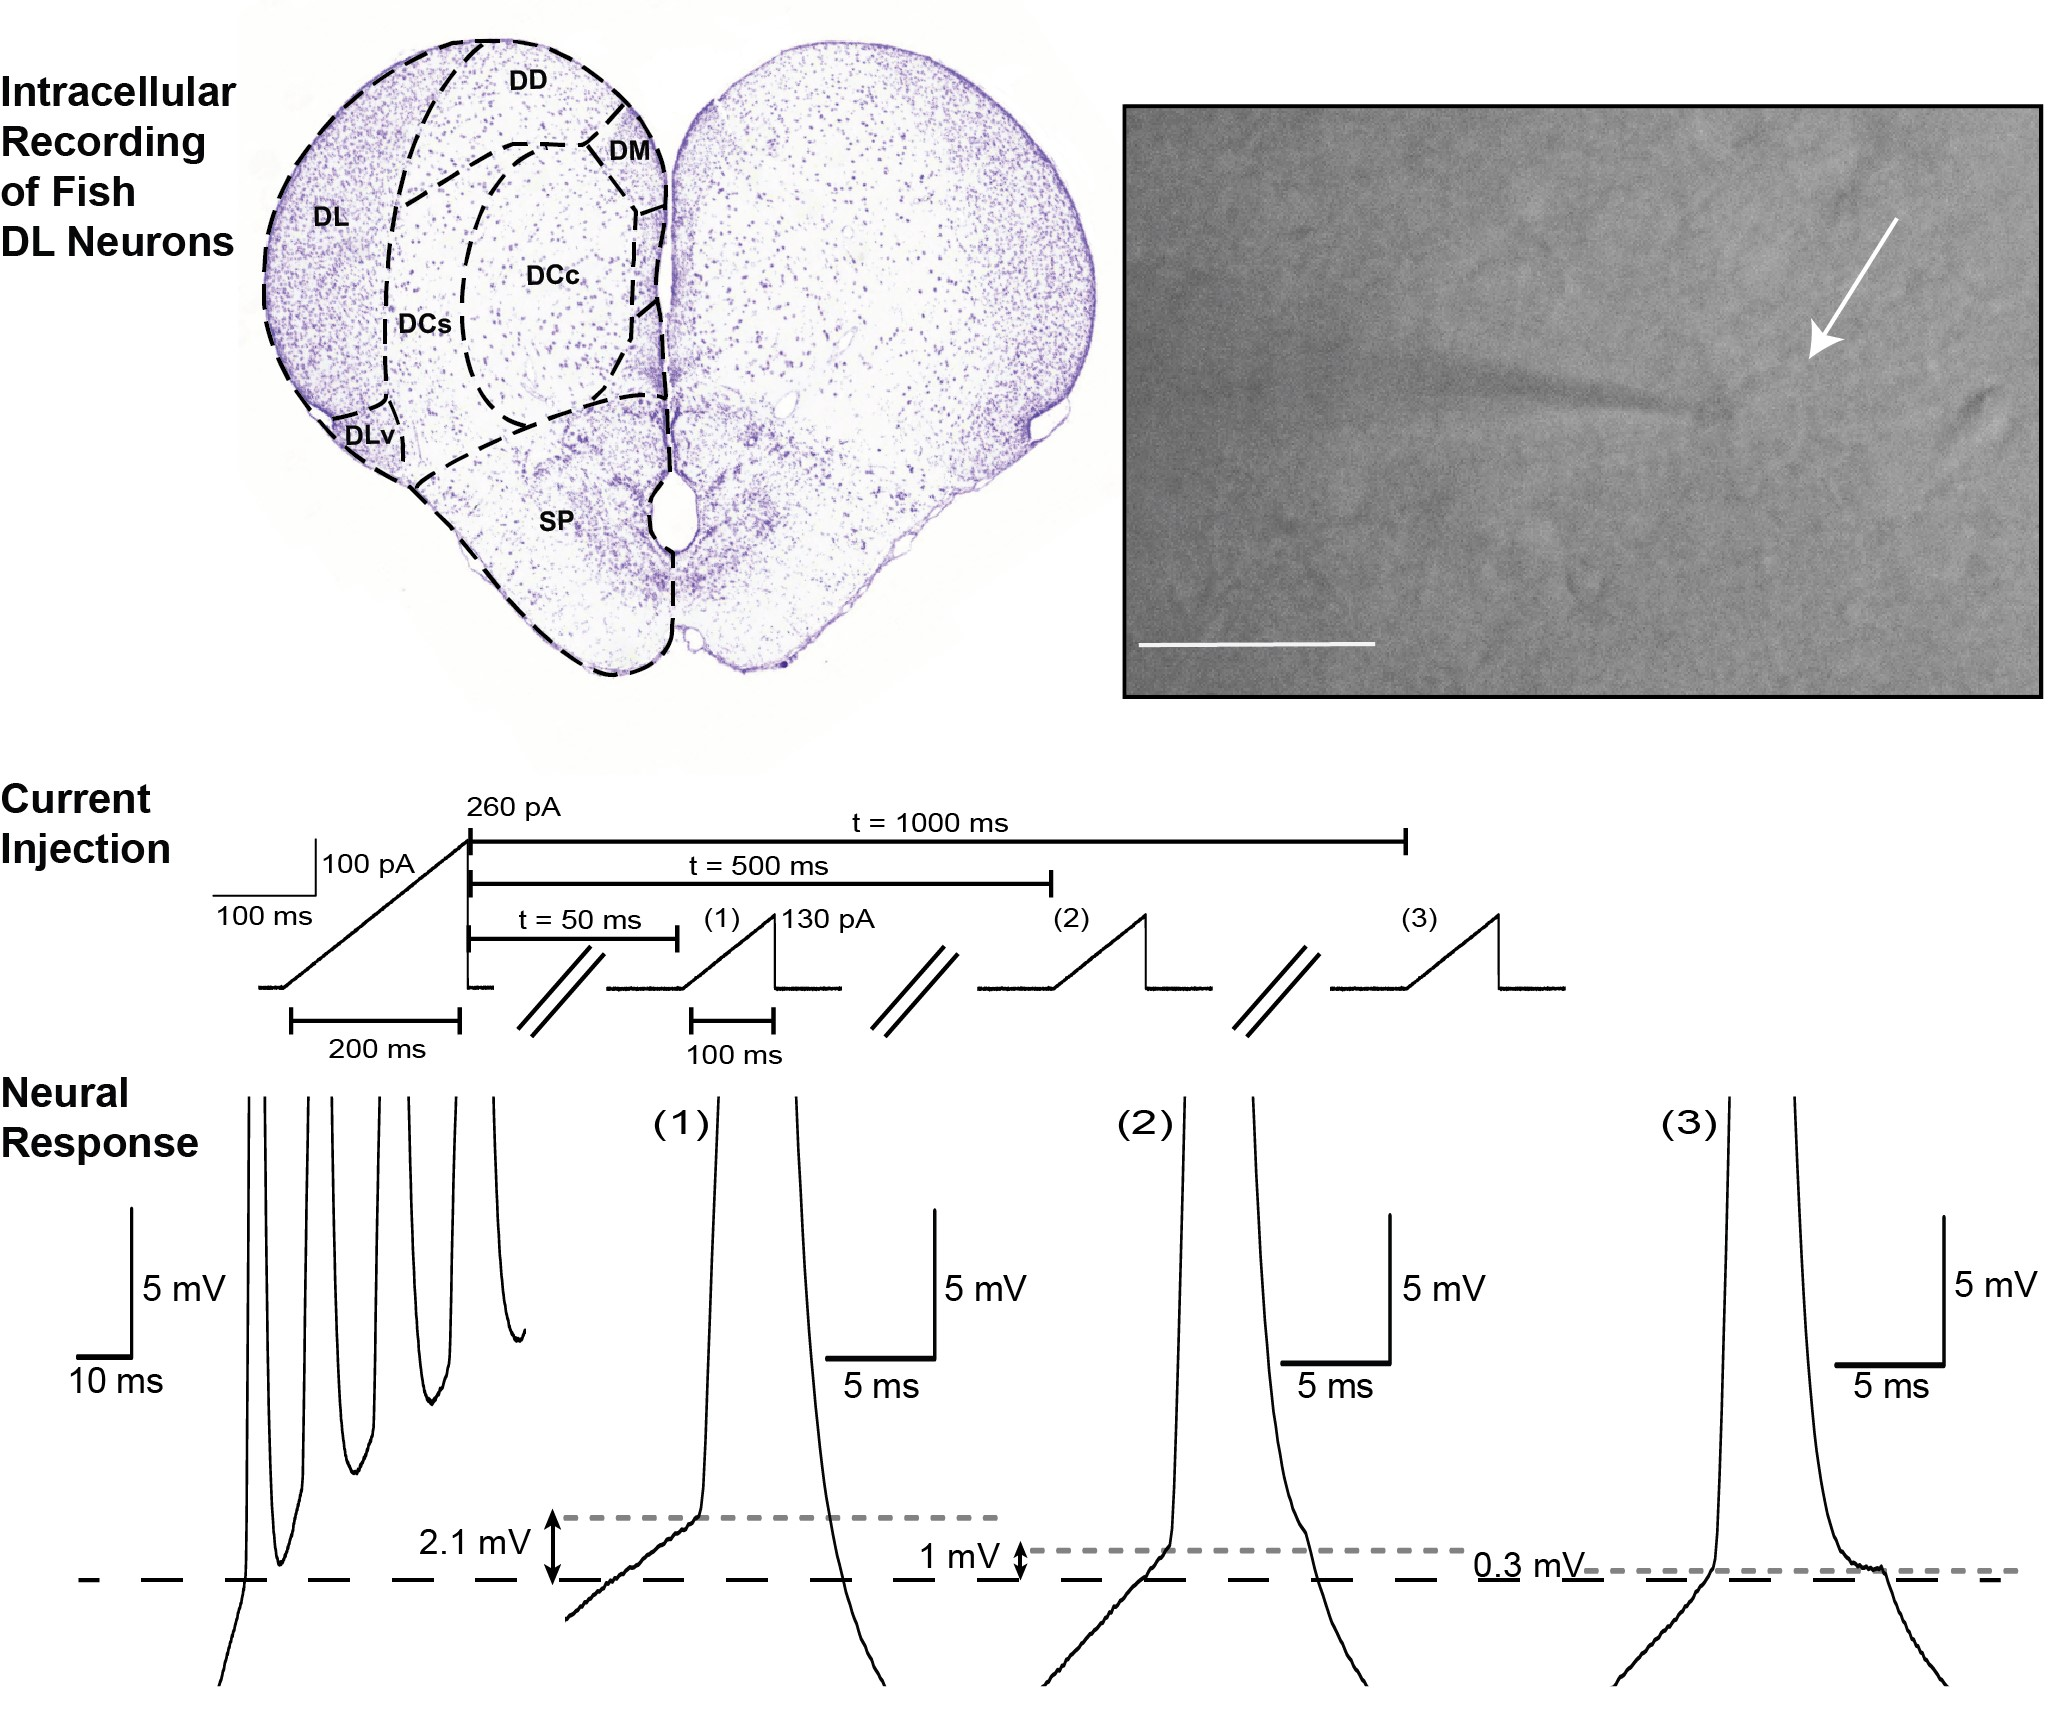 Intracellular recording of DL neurons (adapted from Figs. 1 and 9 from Trinh et al., 2019, eNeuro).